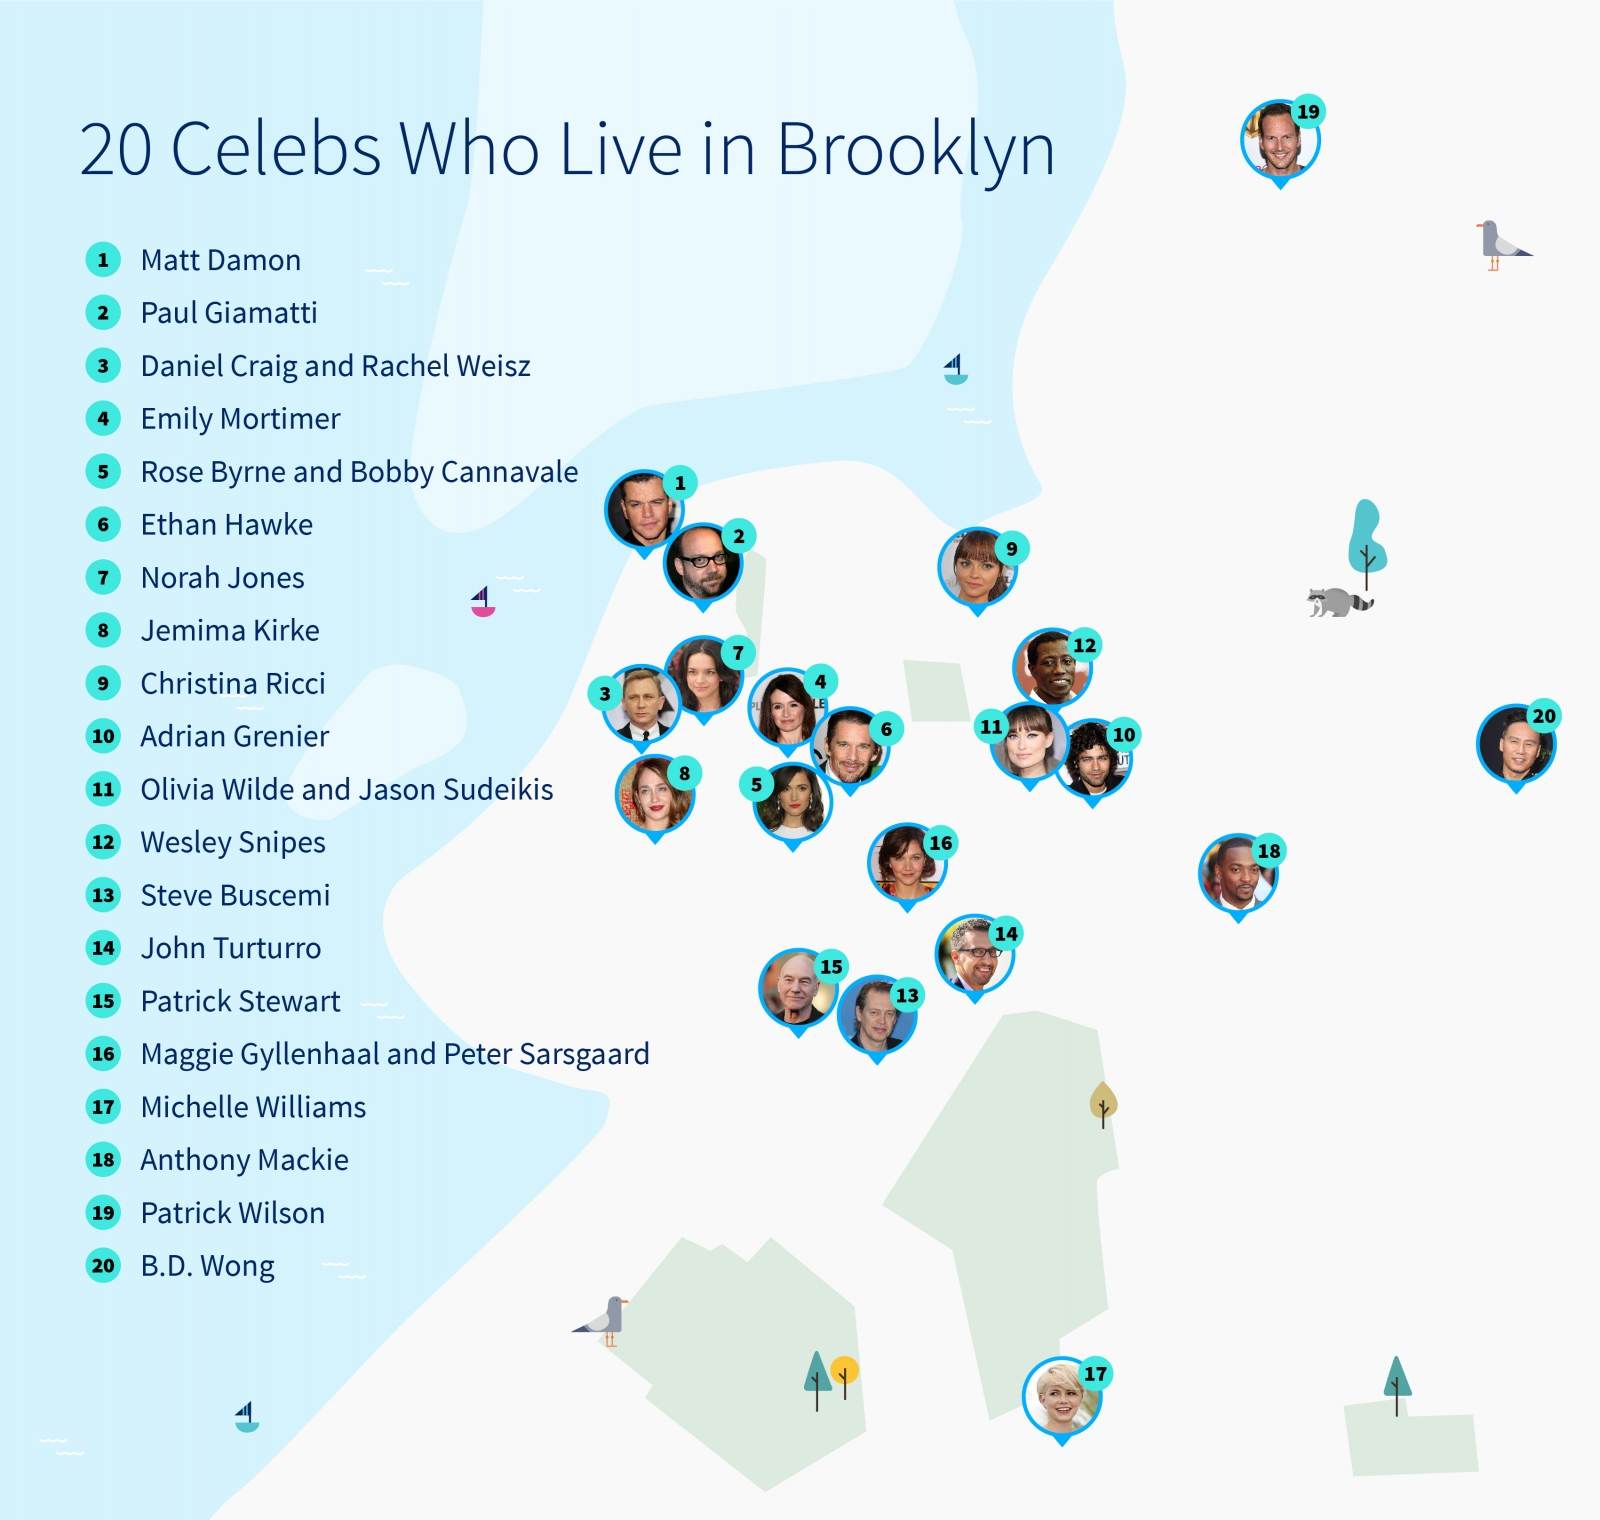 Celebrities in Brooklyn: 20 Stars Who Live in Everyday BK